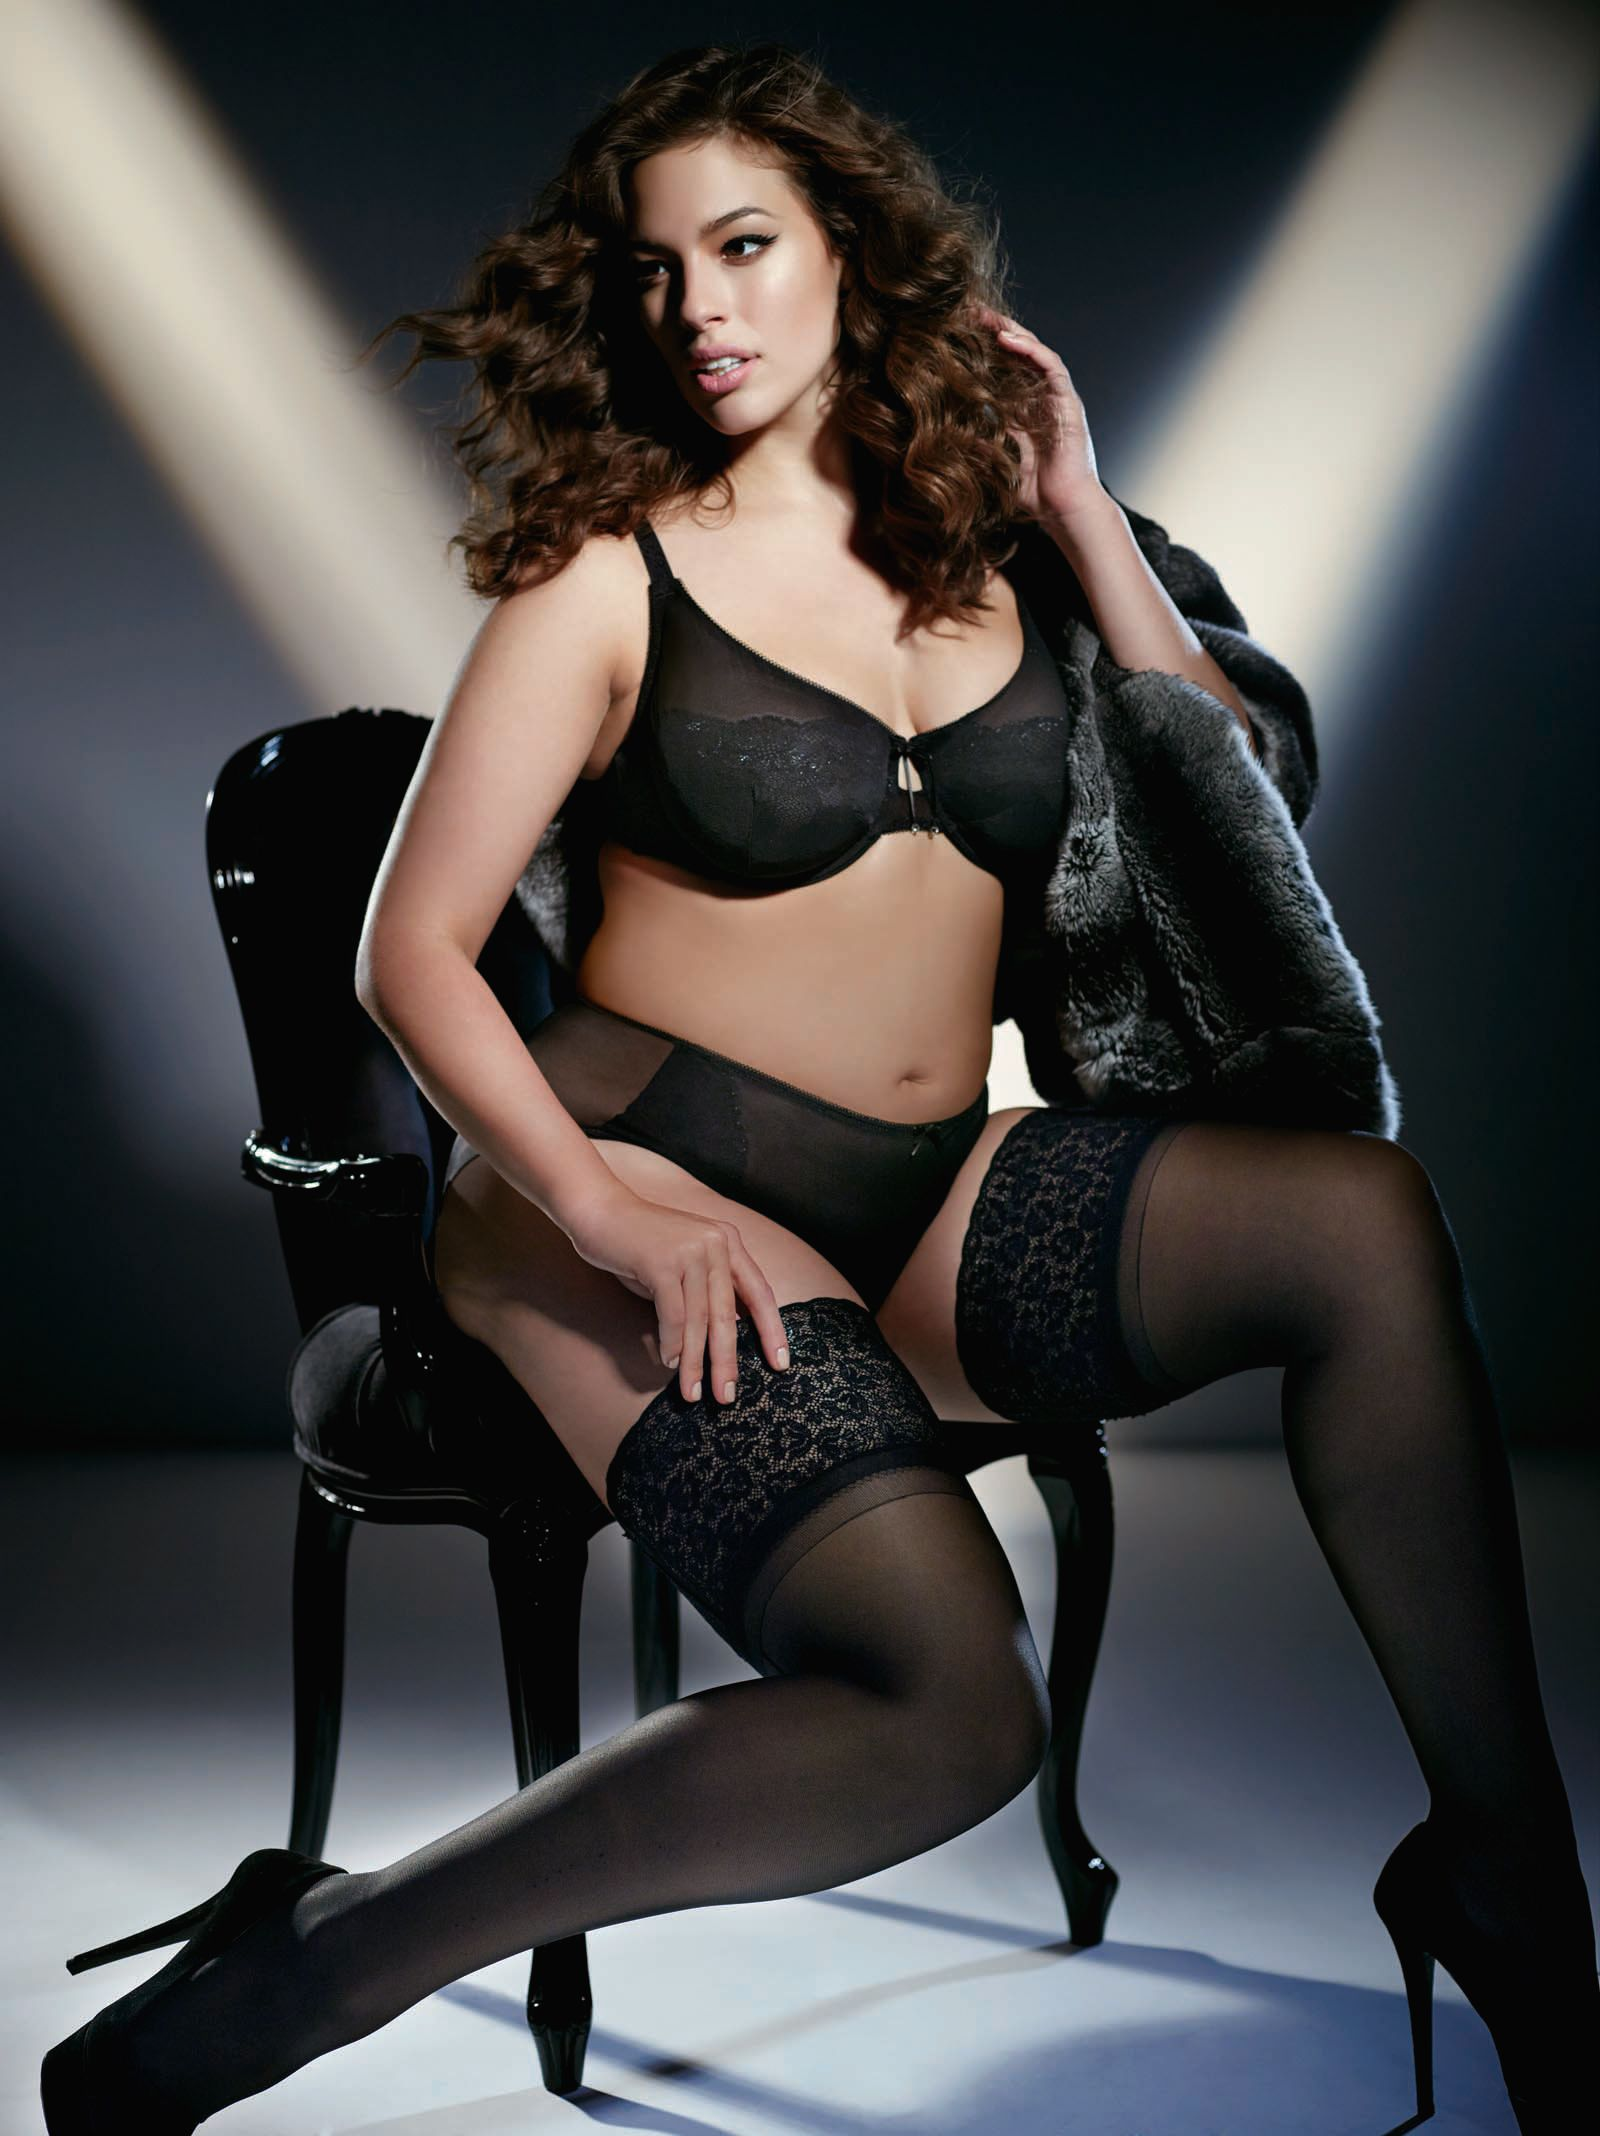 f203eb377e3 Iconic plus size supermodel Ashley Graham launches her first ever lingerie  collection with retailer Addition Elle!